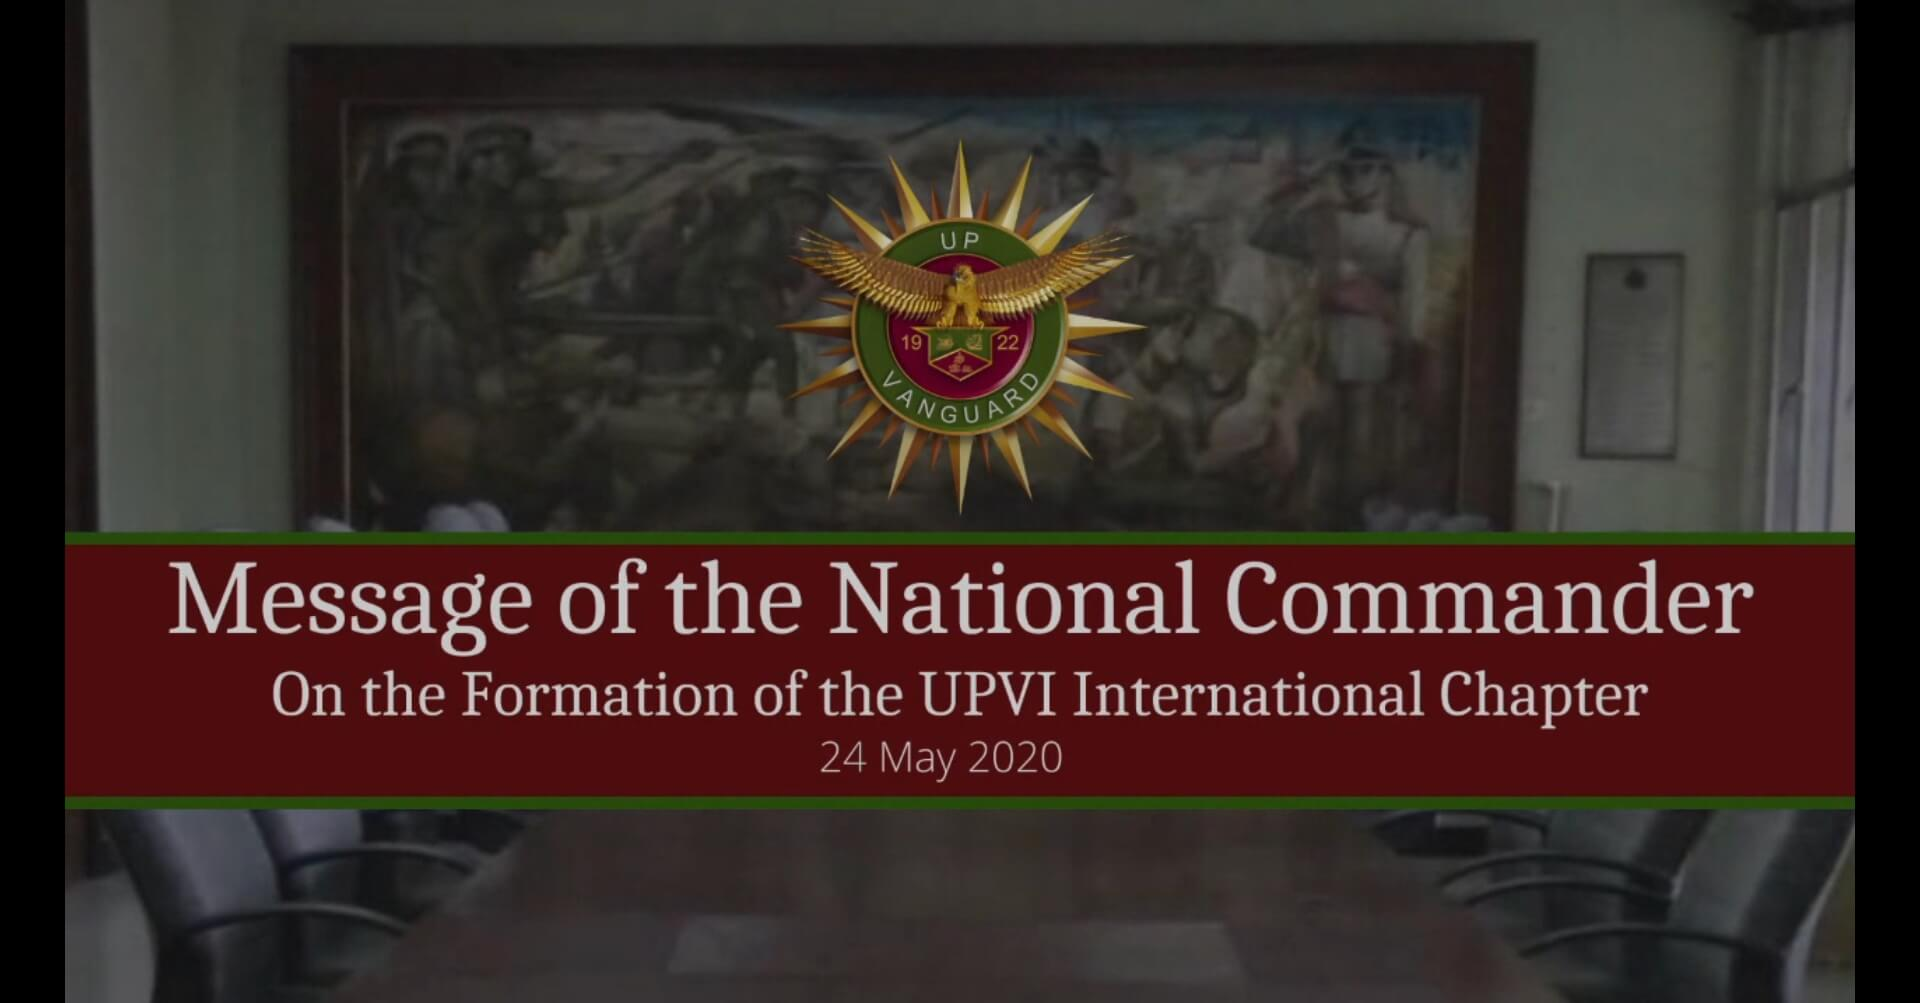 Message of the National Commander On the Formation of the UPVI International Chapter